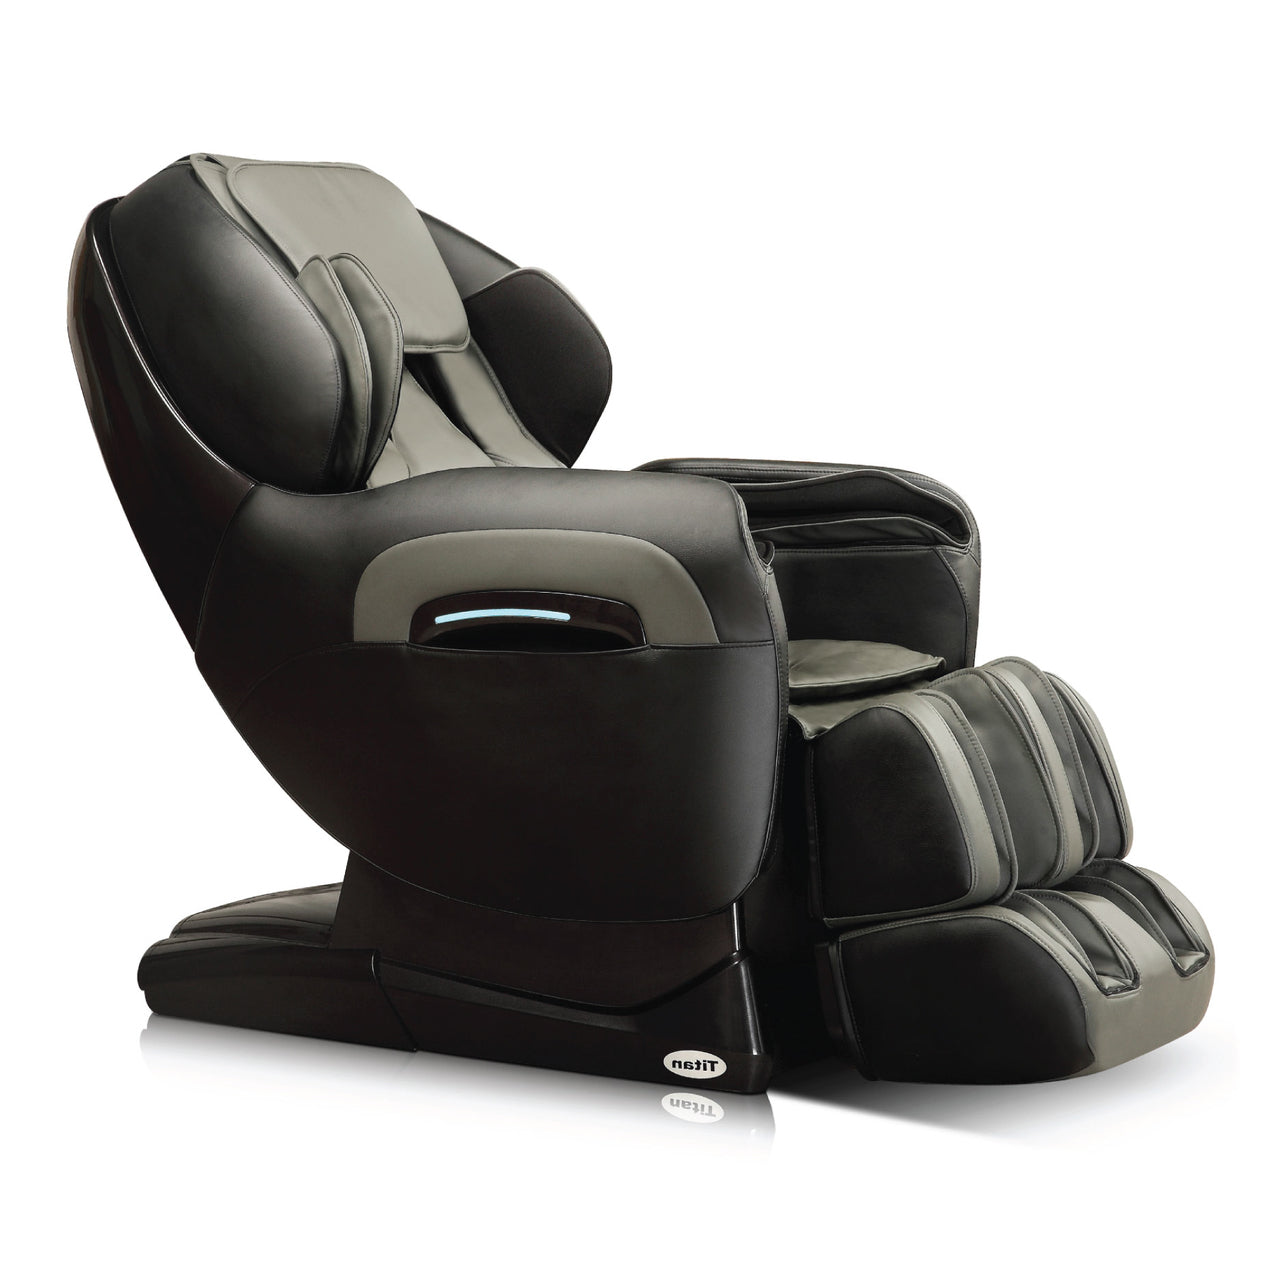 Titan TP-8400 Massage Chair